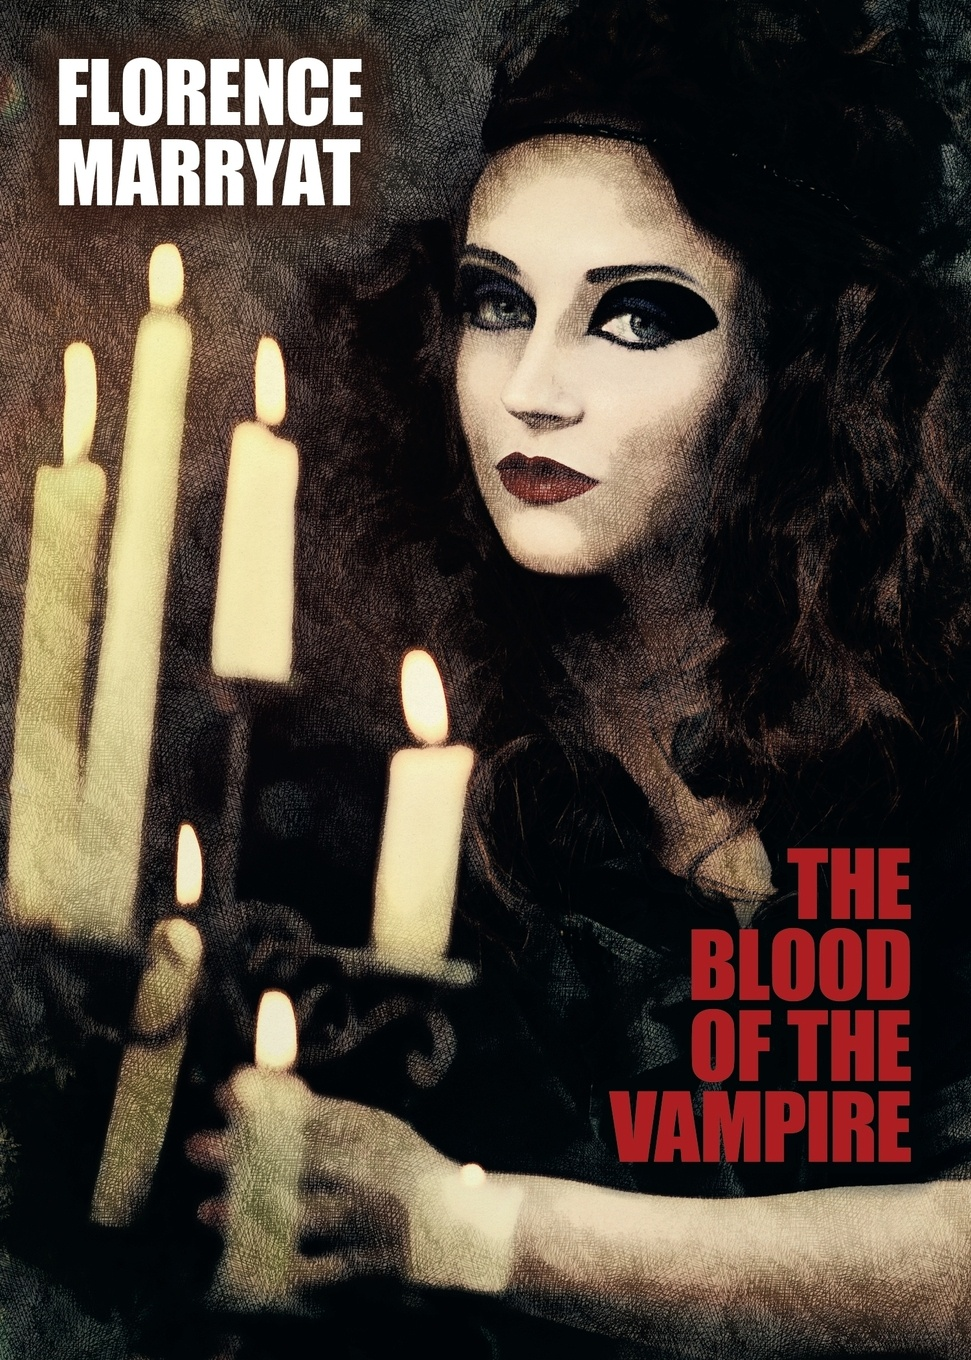 Florence Marryat The Blood of the Vampire varney the vampire or the feast of blood one volume edition